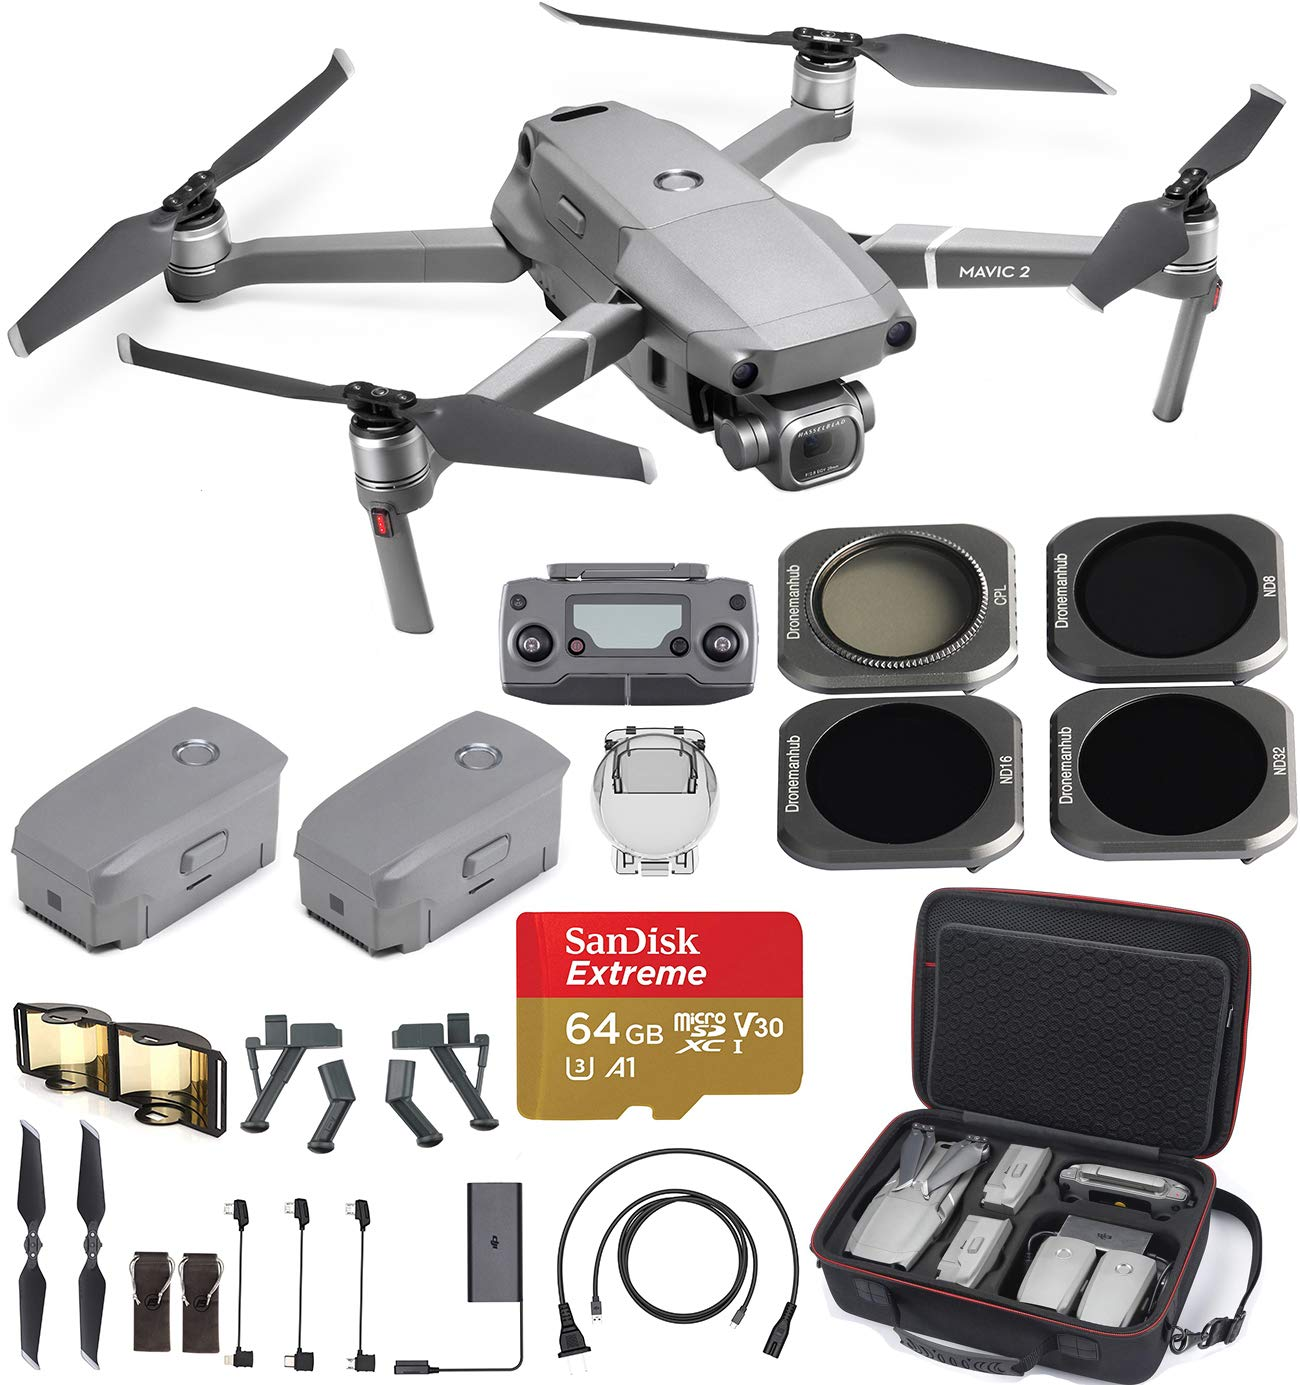 DJI Mavic 2 Pro with 20MP Hasselblad Camera, Comes with One Extra Battery, Hard Professional Case, ND Filter Set, Extreme SD card and More by DJI